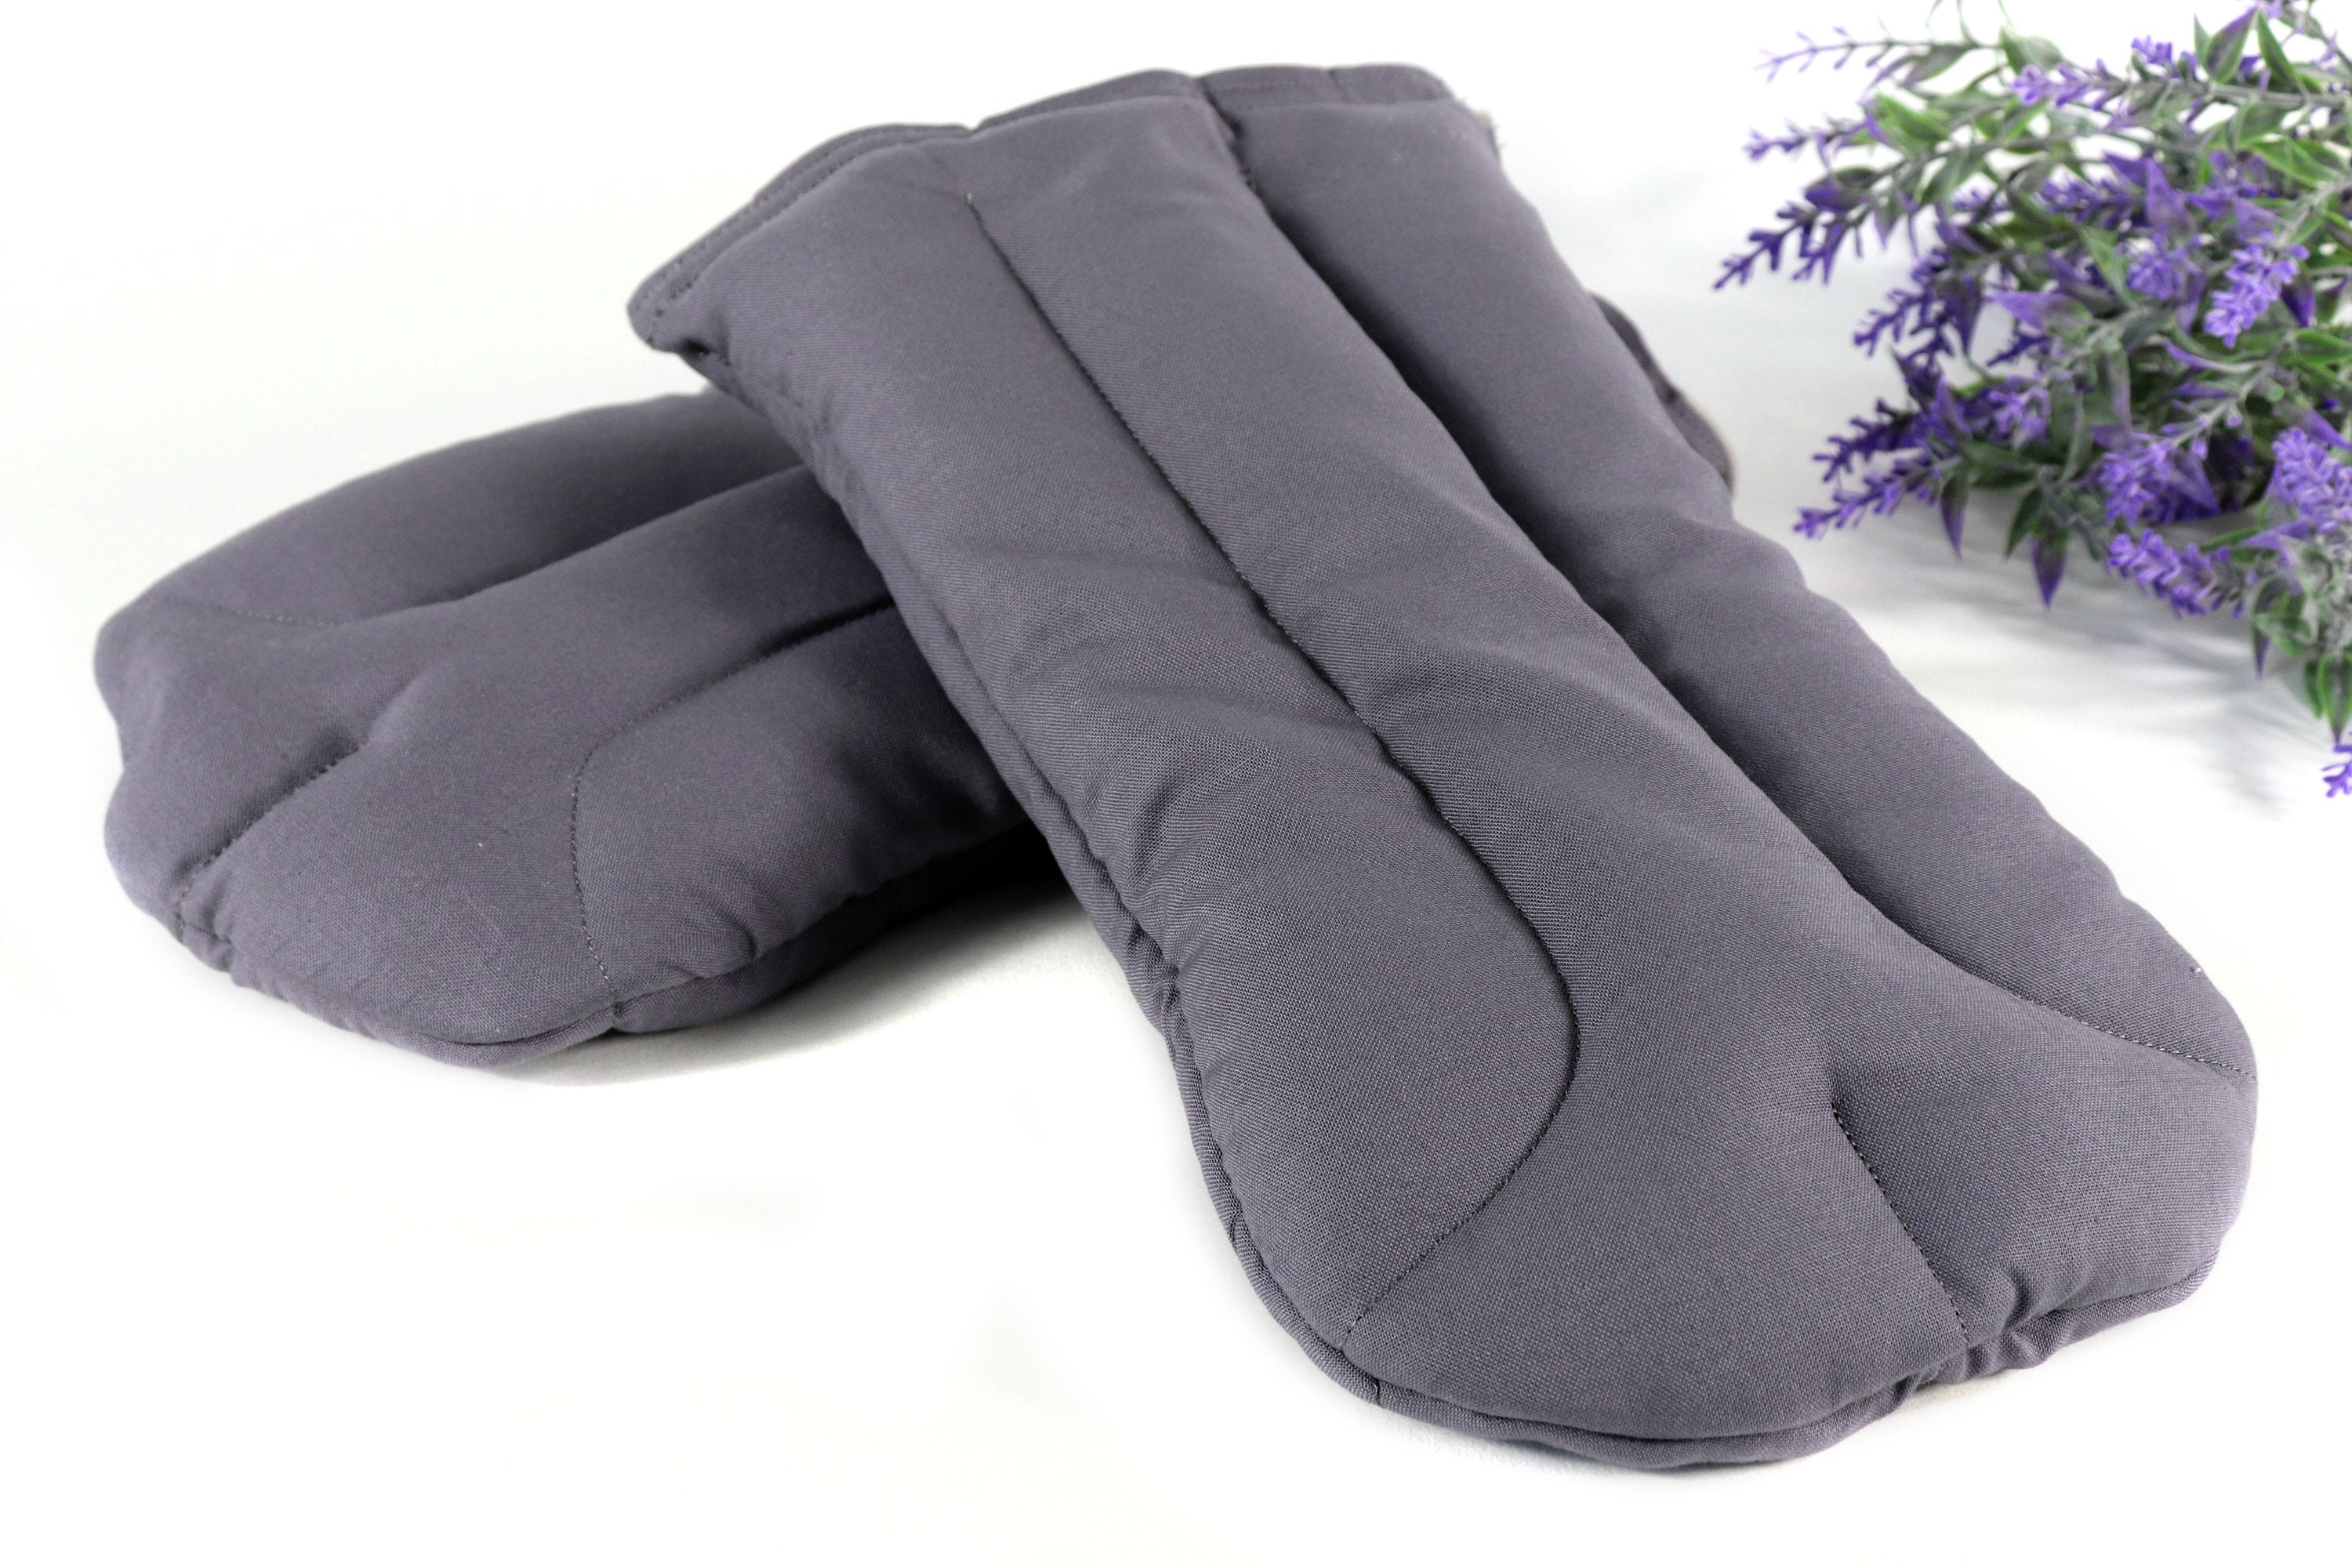 Heated hand warmers from Natural Body Comfort to help keep your hands from freezing